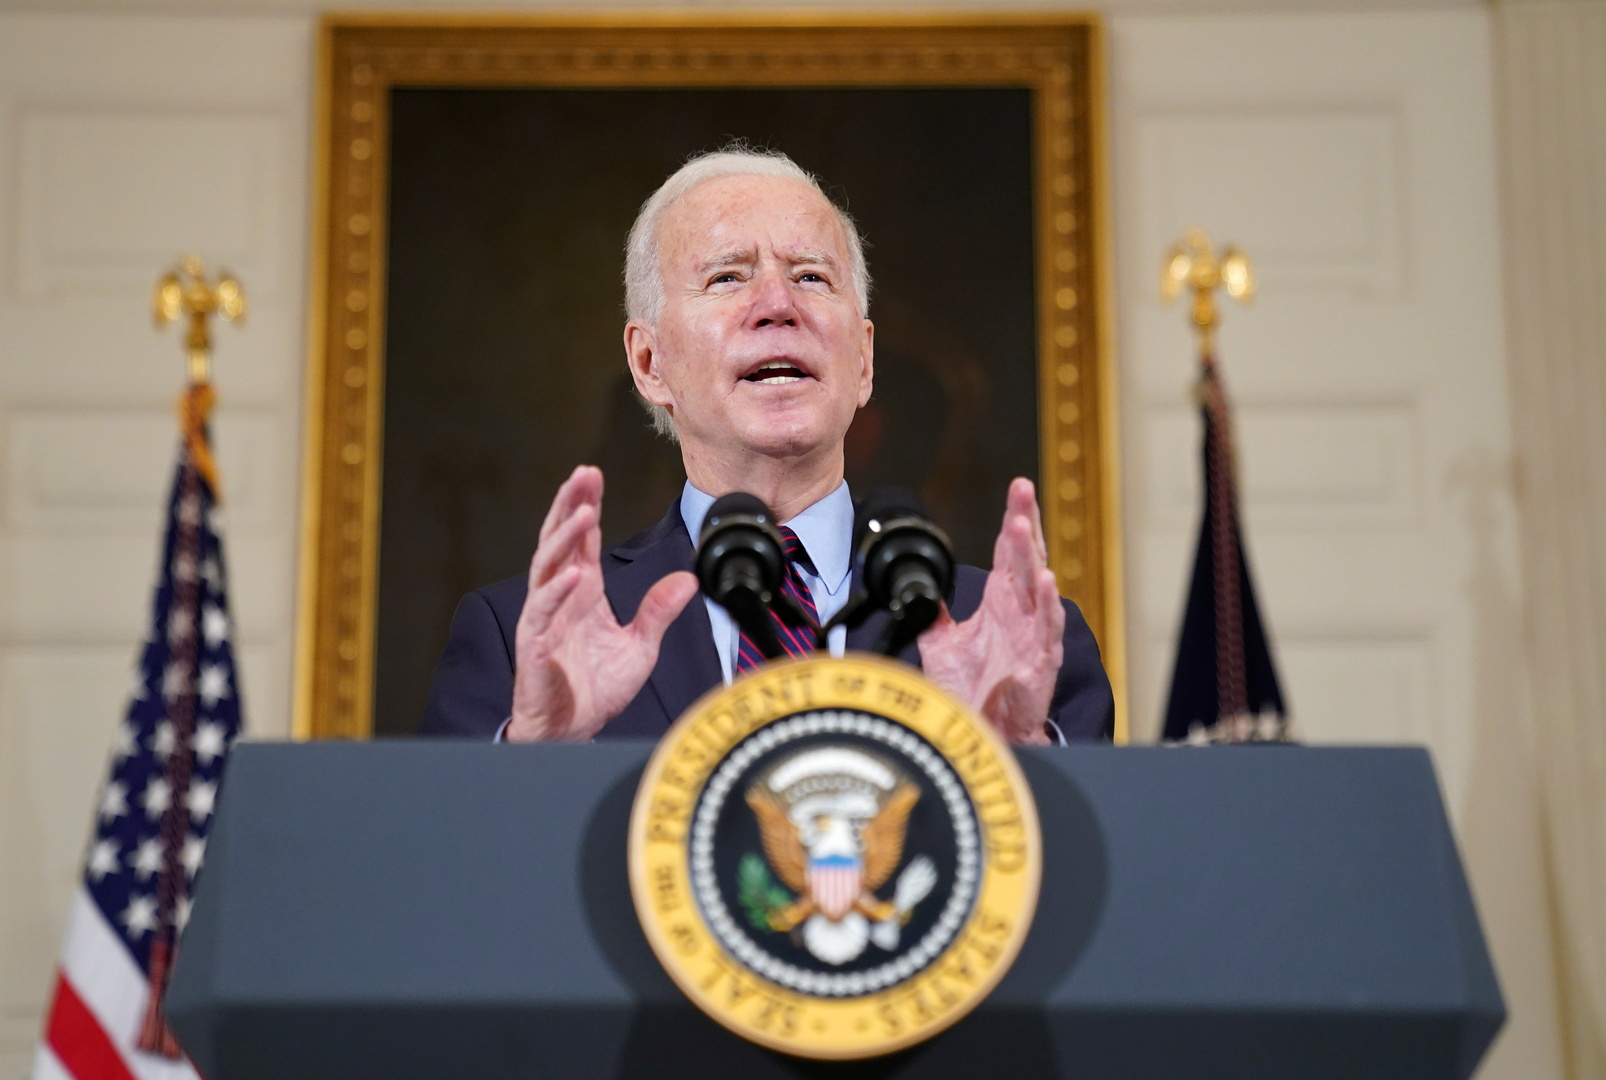 US report: Biden administration freezes two deals to sell high-precision weapons to Saudi Arabia